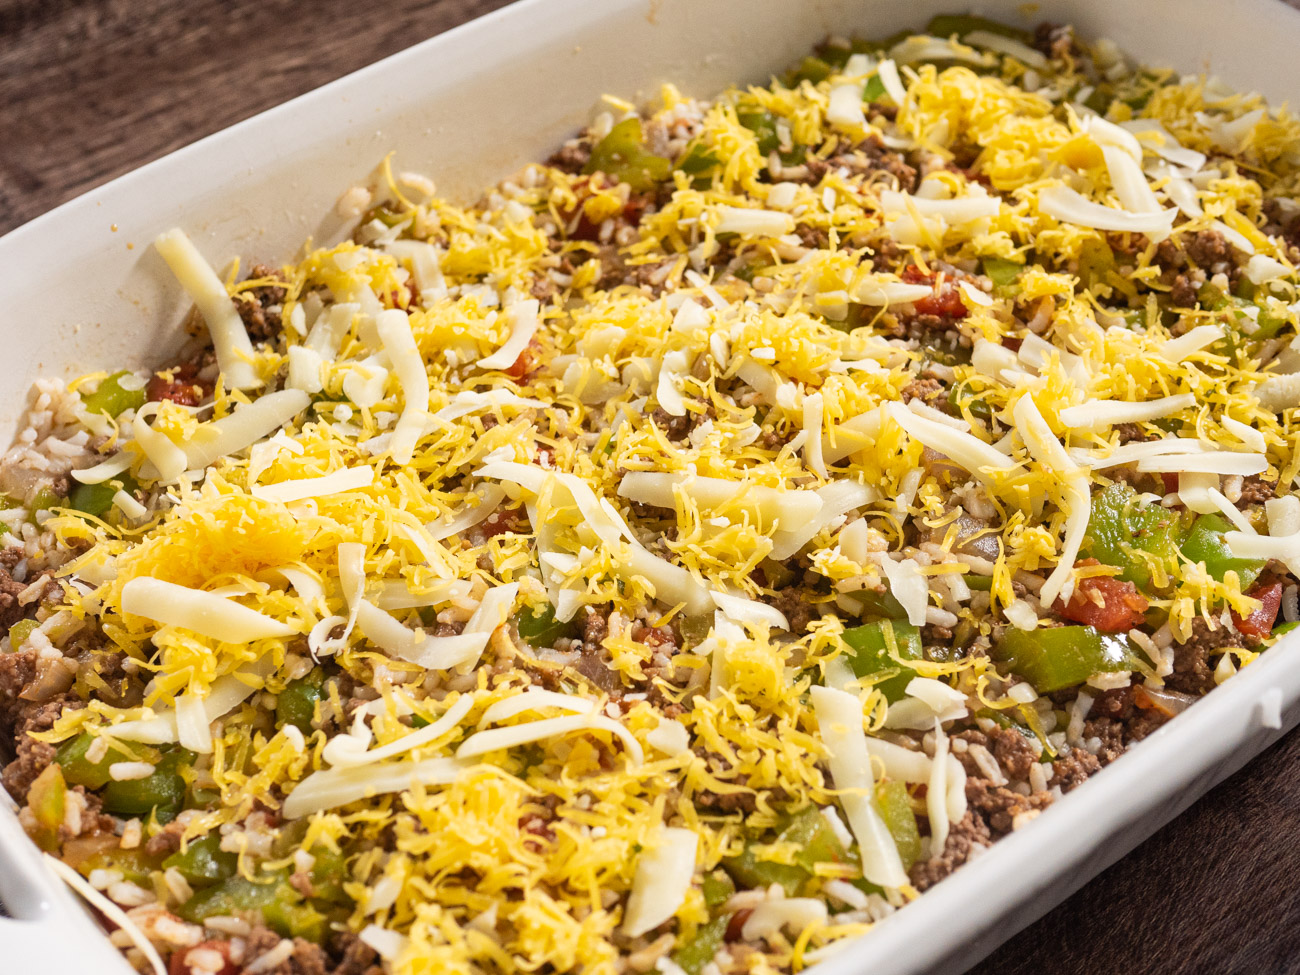 Remove skillet from heat. Stir in cooked rice, then immediately pour mixture into the prepared casserole dish and top with shredded cheese.